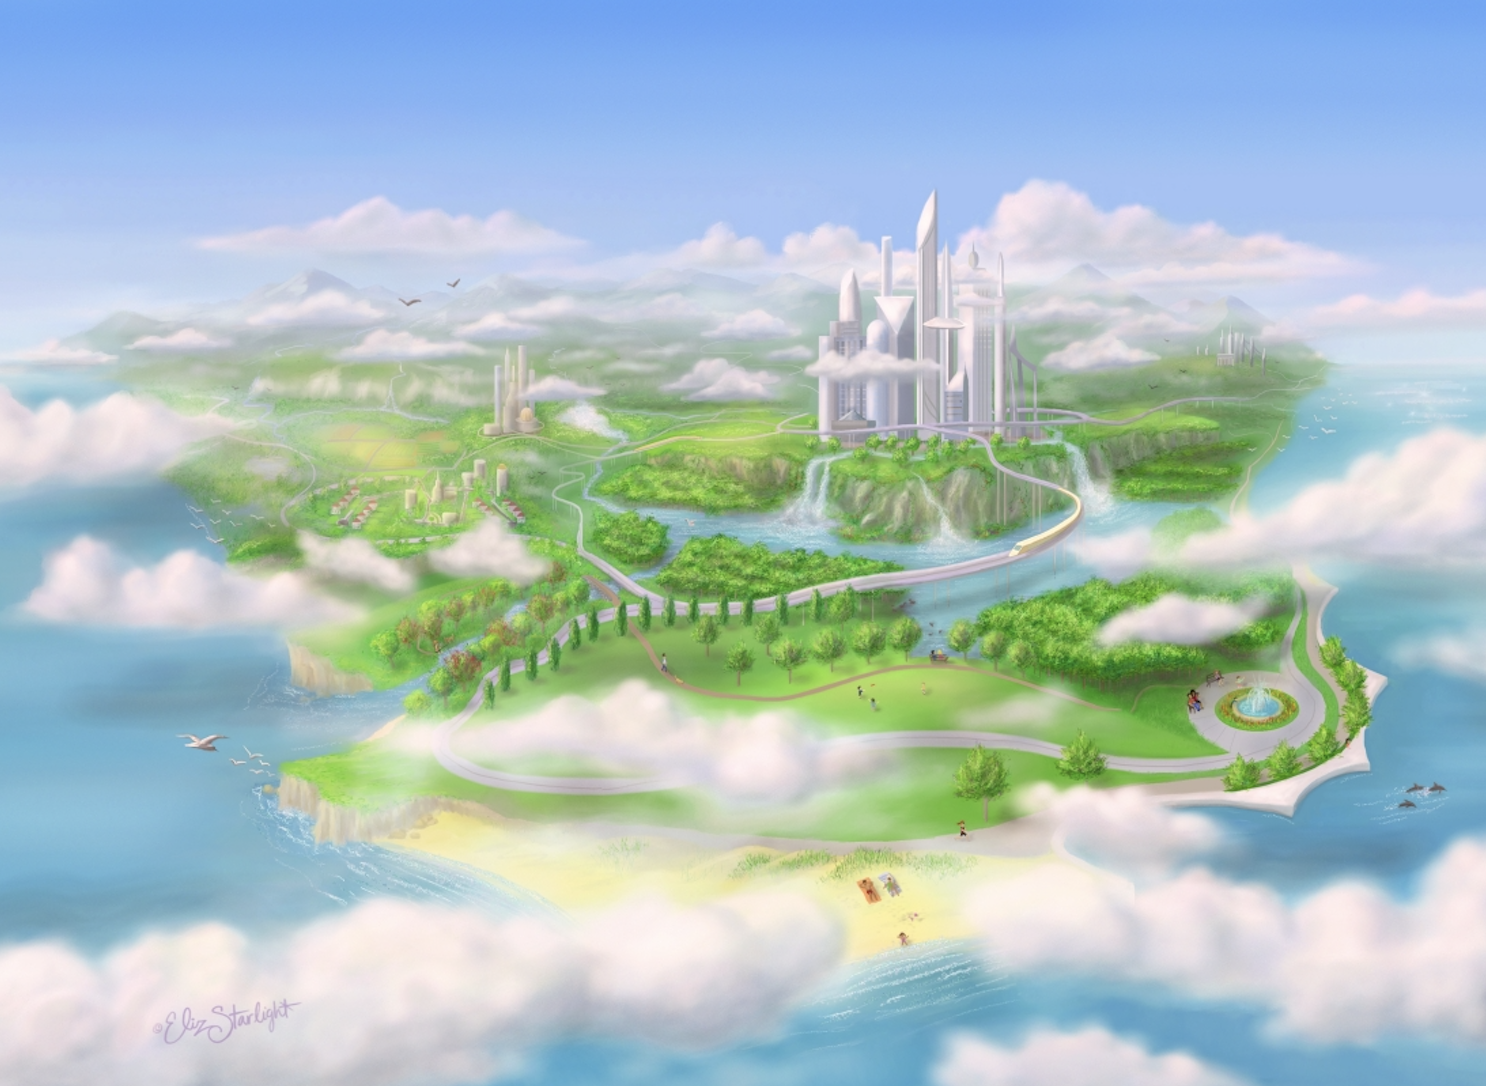 Island illustration of fantasy world